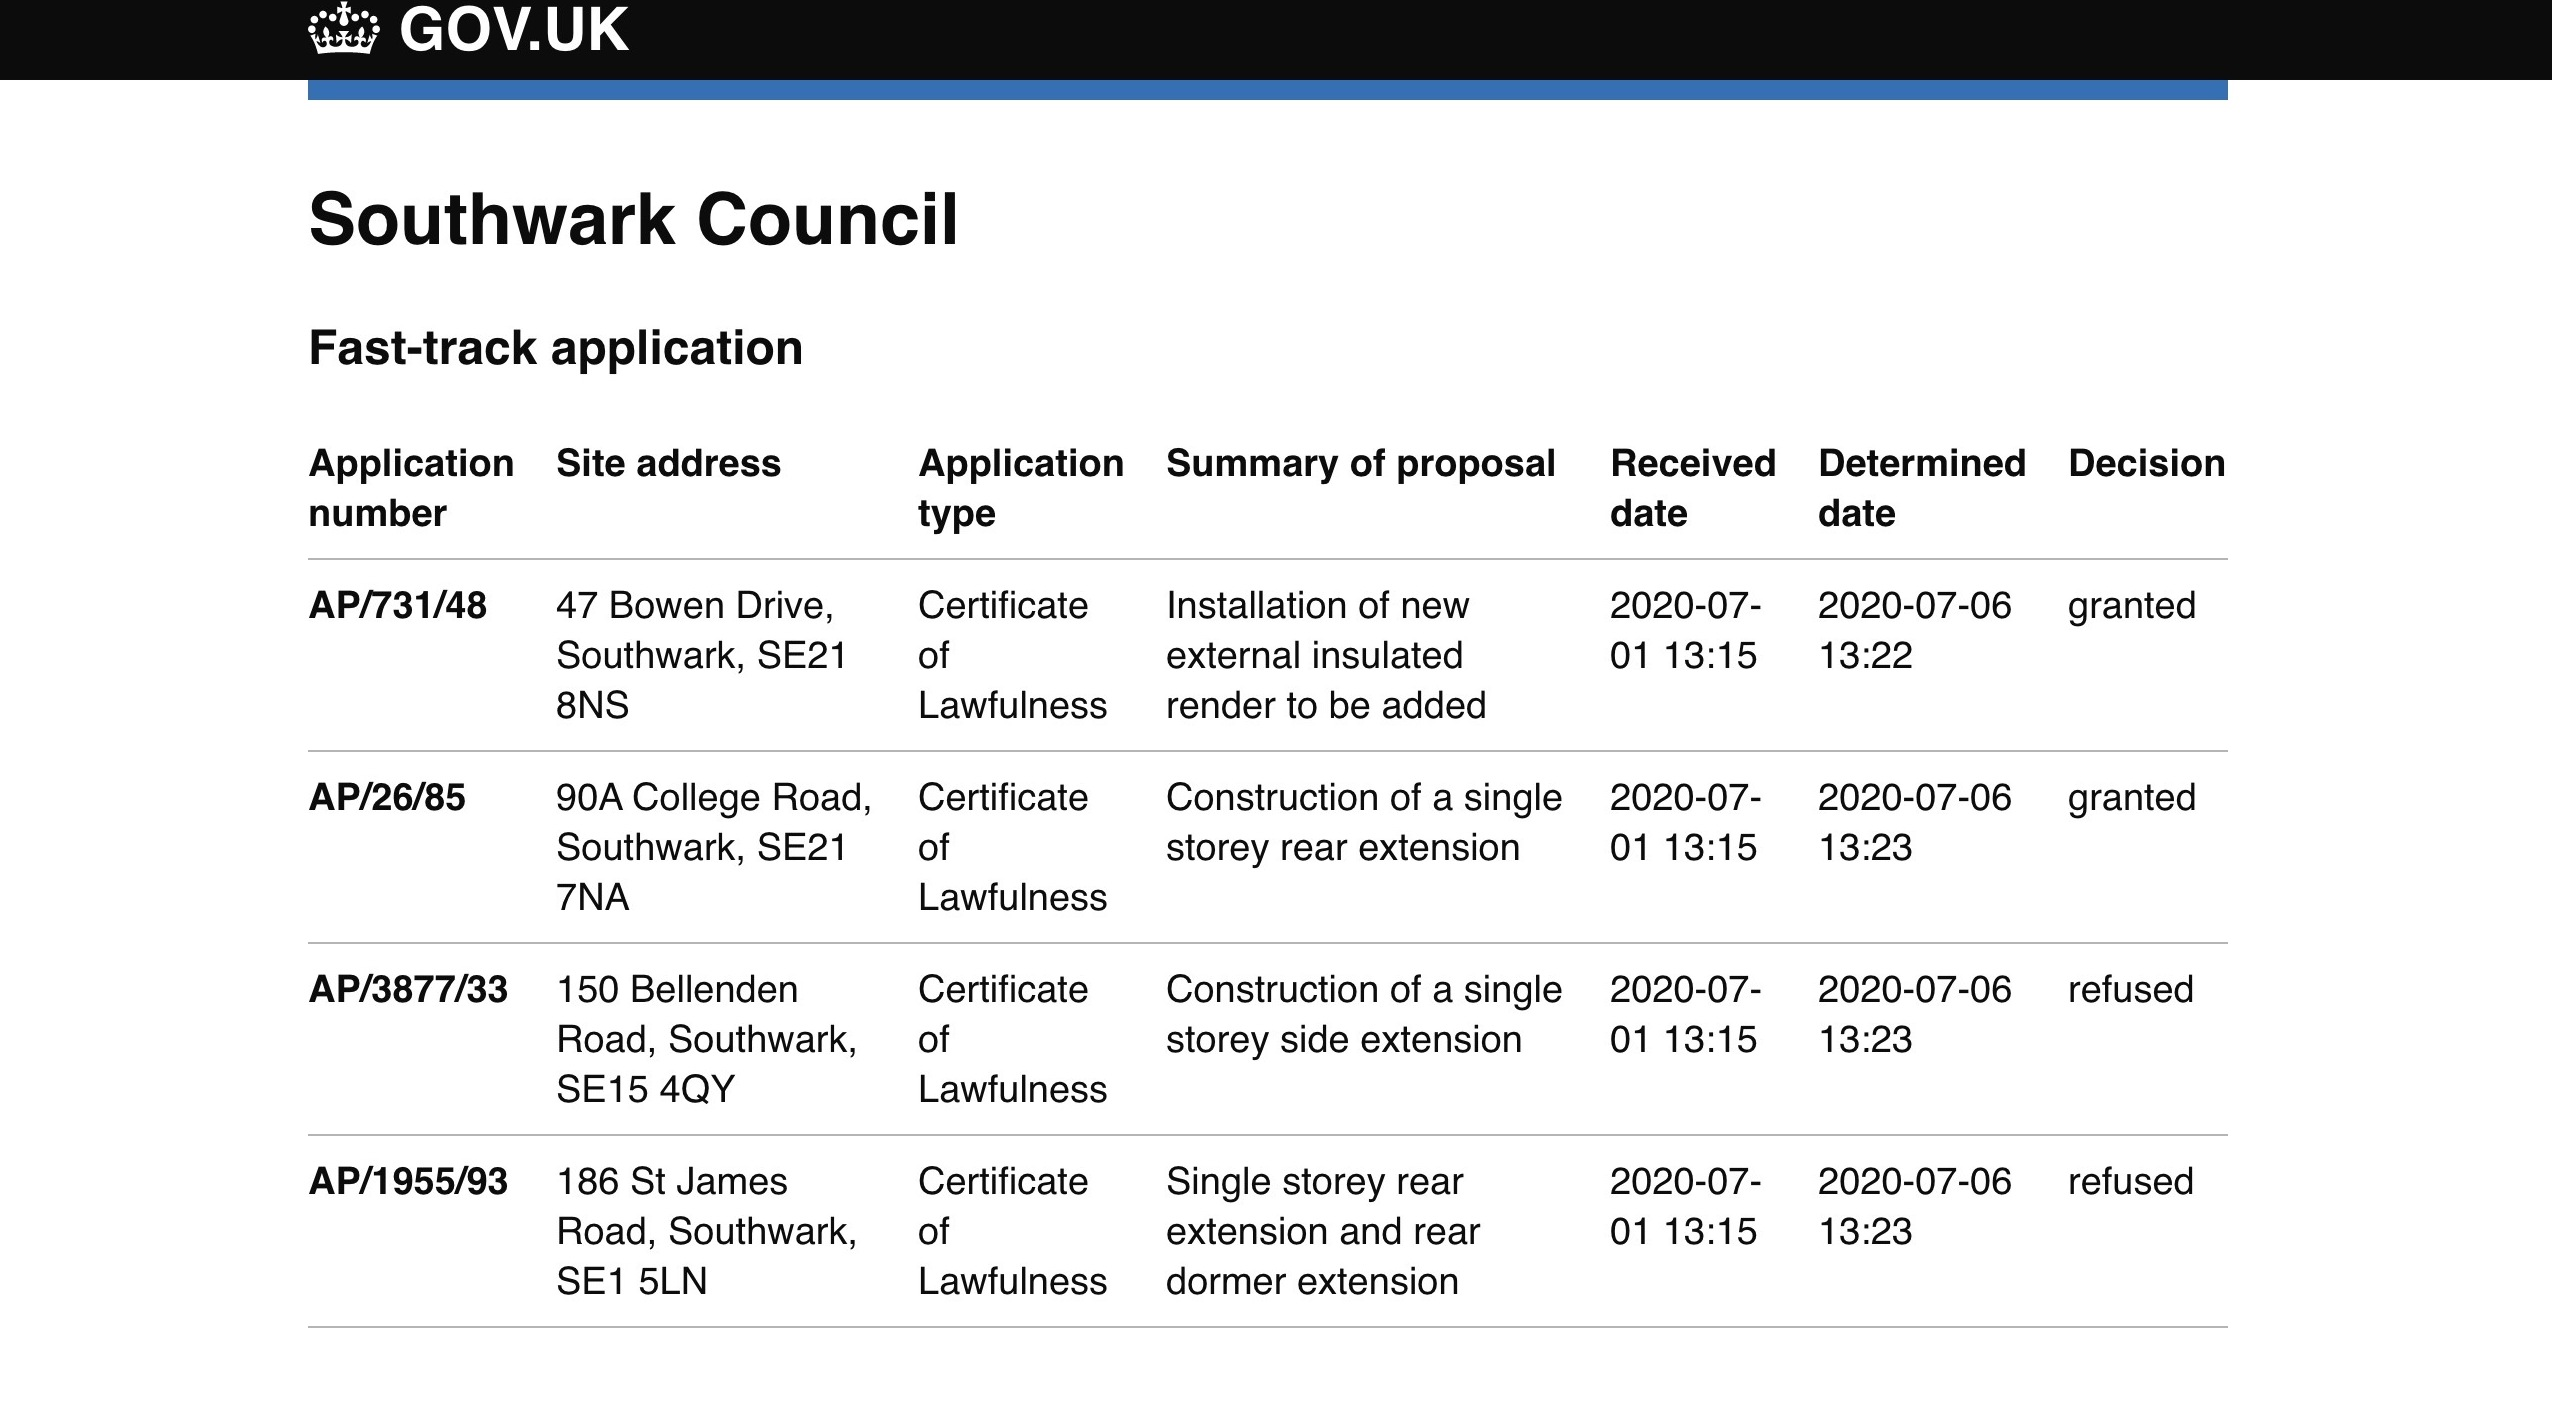 Screenshot of our proof of concept register which lists all of the householder planning applications and the decision that was made on them (e.g granted or refused).